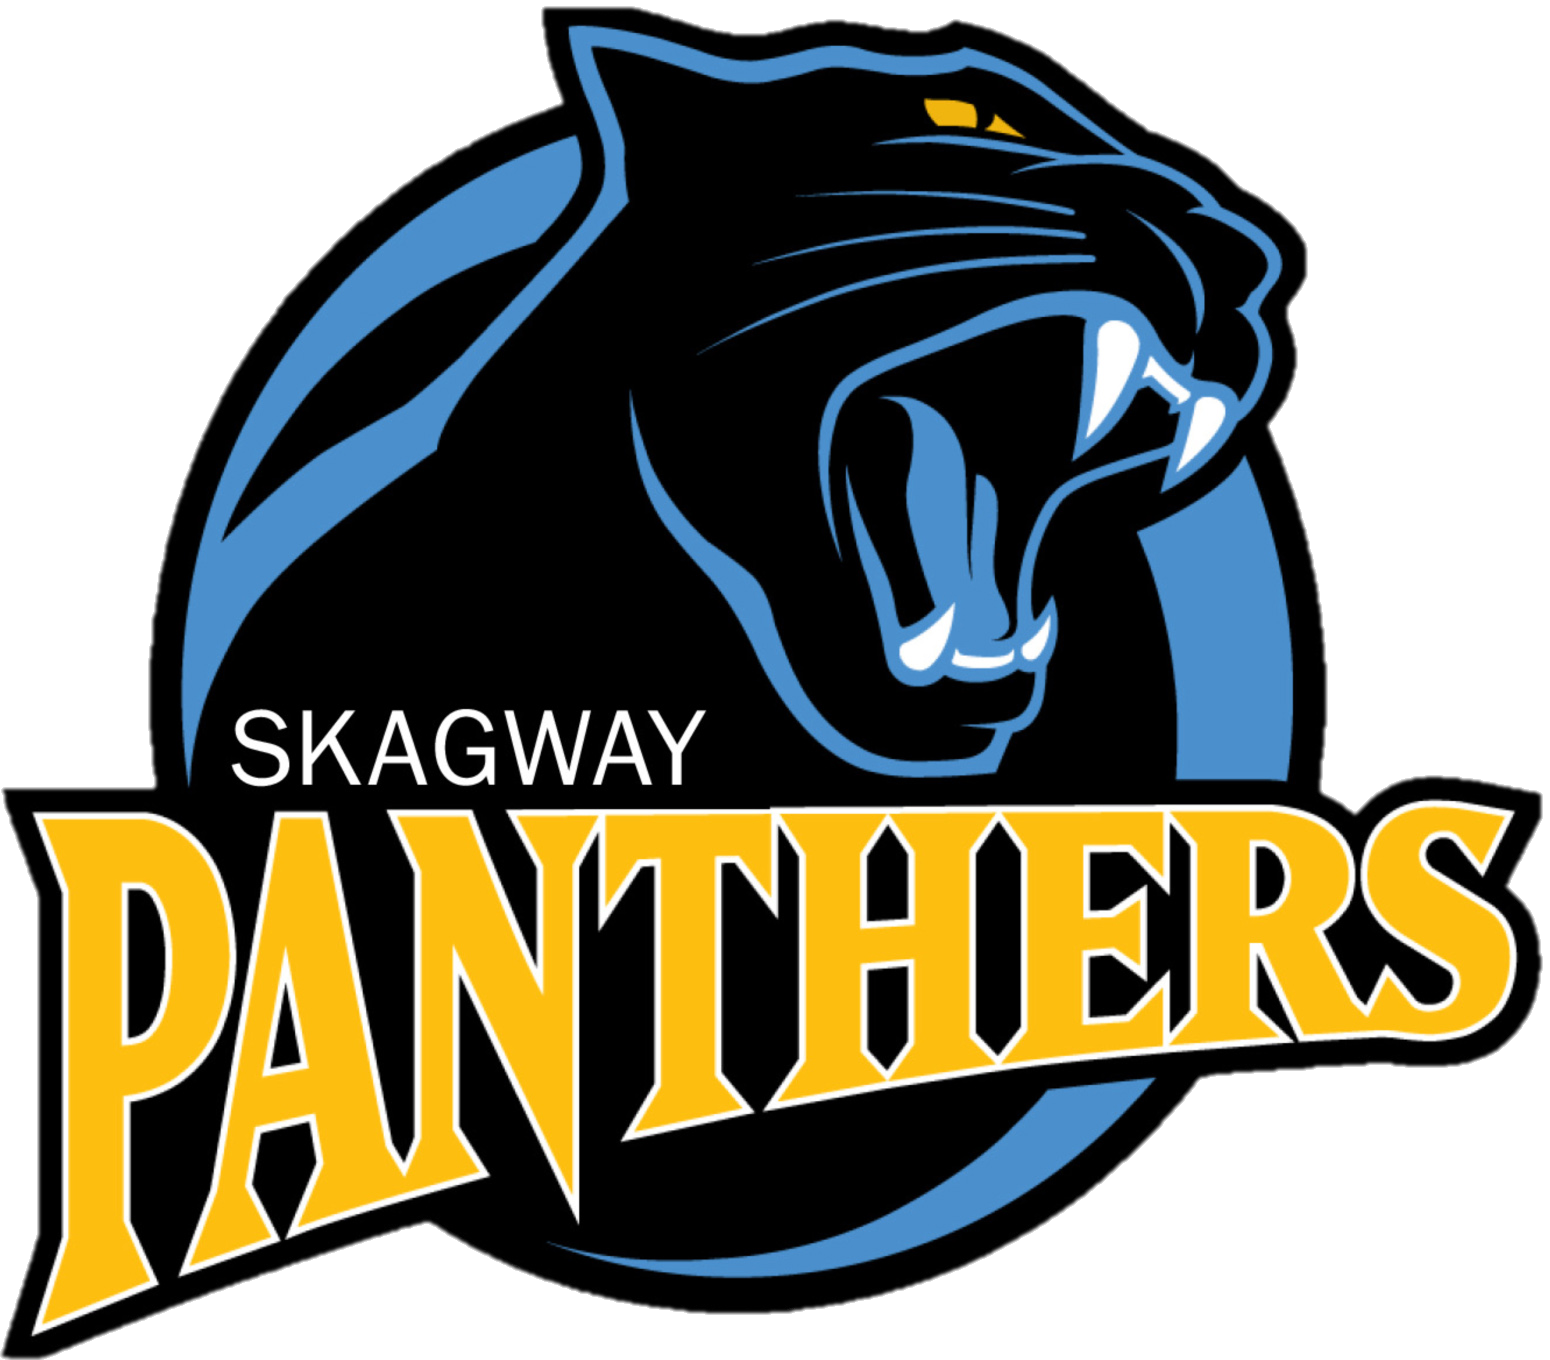 Panthers basketball clipart graphic transparent download Home - Skagway School District graphic transparent download